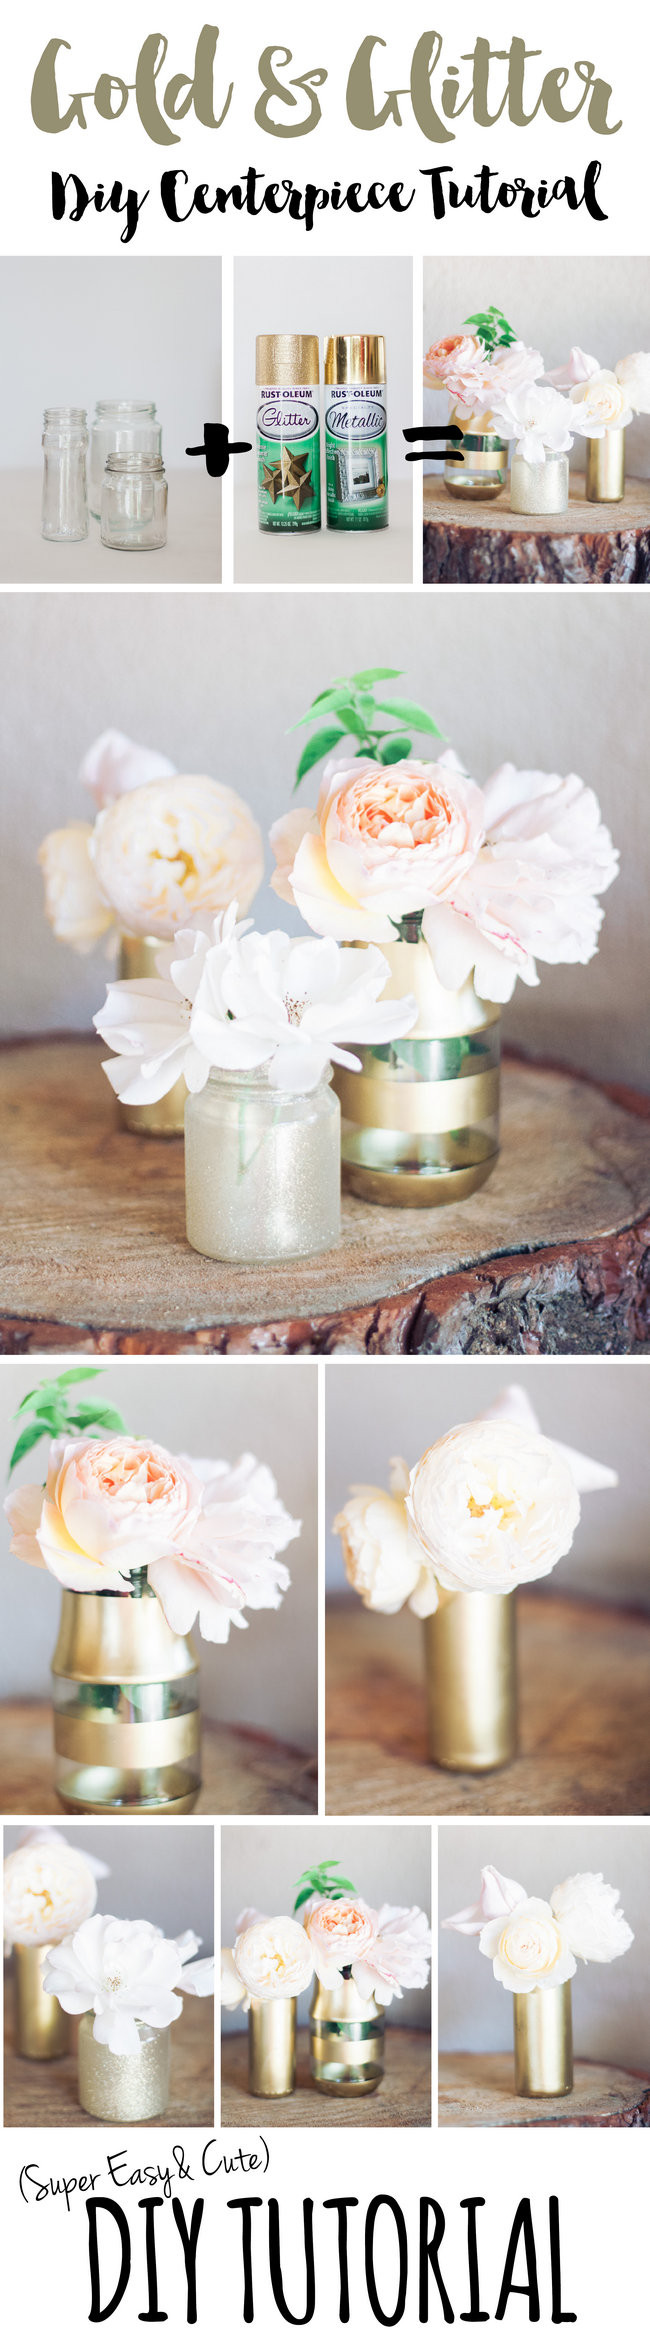 Easy and super stunning DIY Gold Glitter Bottle to Vase Tutorial. Makes stunning wedding centerpieces! https://confettidaydreams.com/diy-gold-and-glitter-vases-tutorial/